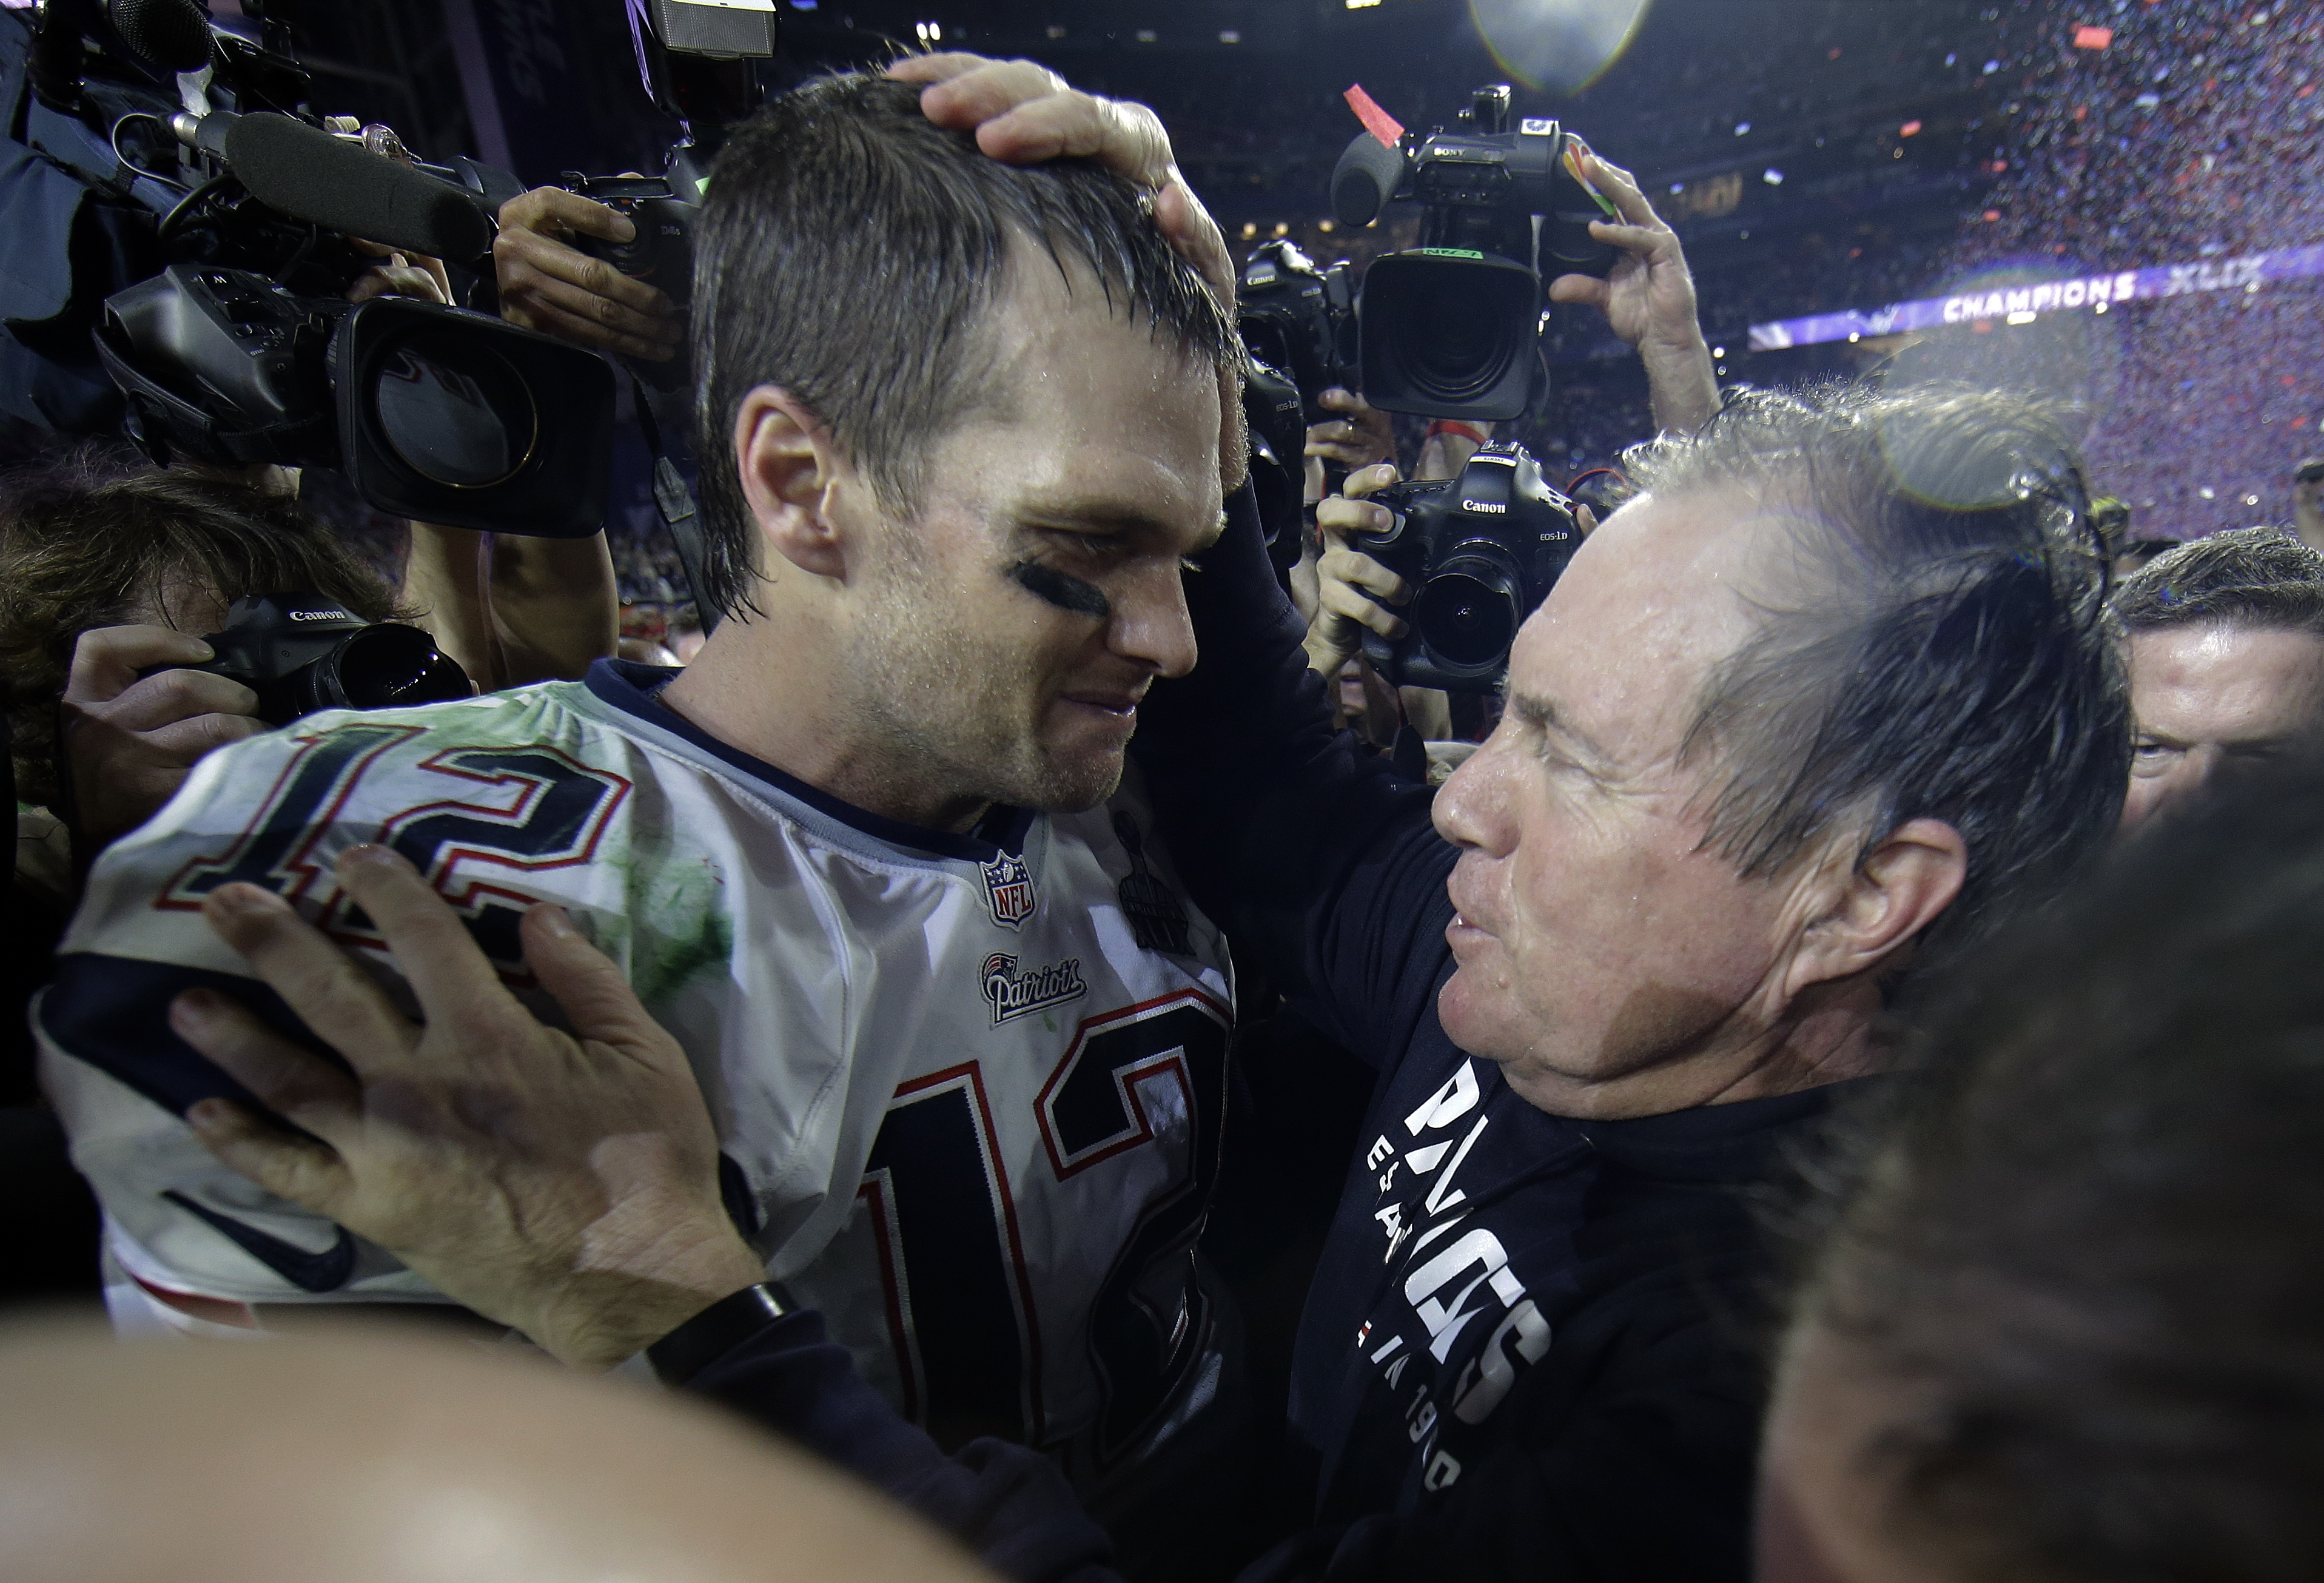 FILE - In this Feb. 1, 2015, file photo, New England Patriots quarterback Tom Brady celebrates with head coach Bill Belichick after winning NFL Super Bowl XLIX football game against the Seattle Seahawks  in Glendale, Ariz. The Patriots won 28-24. (AP Phot